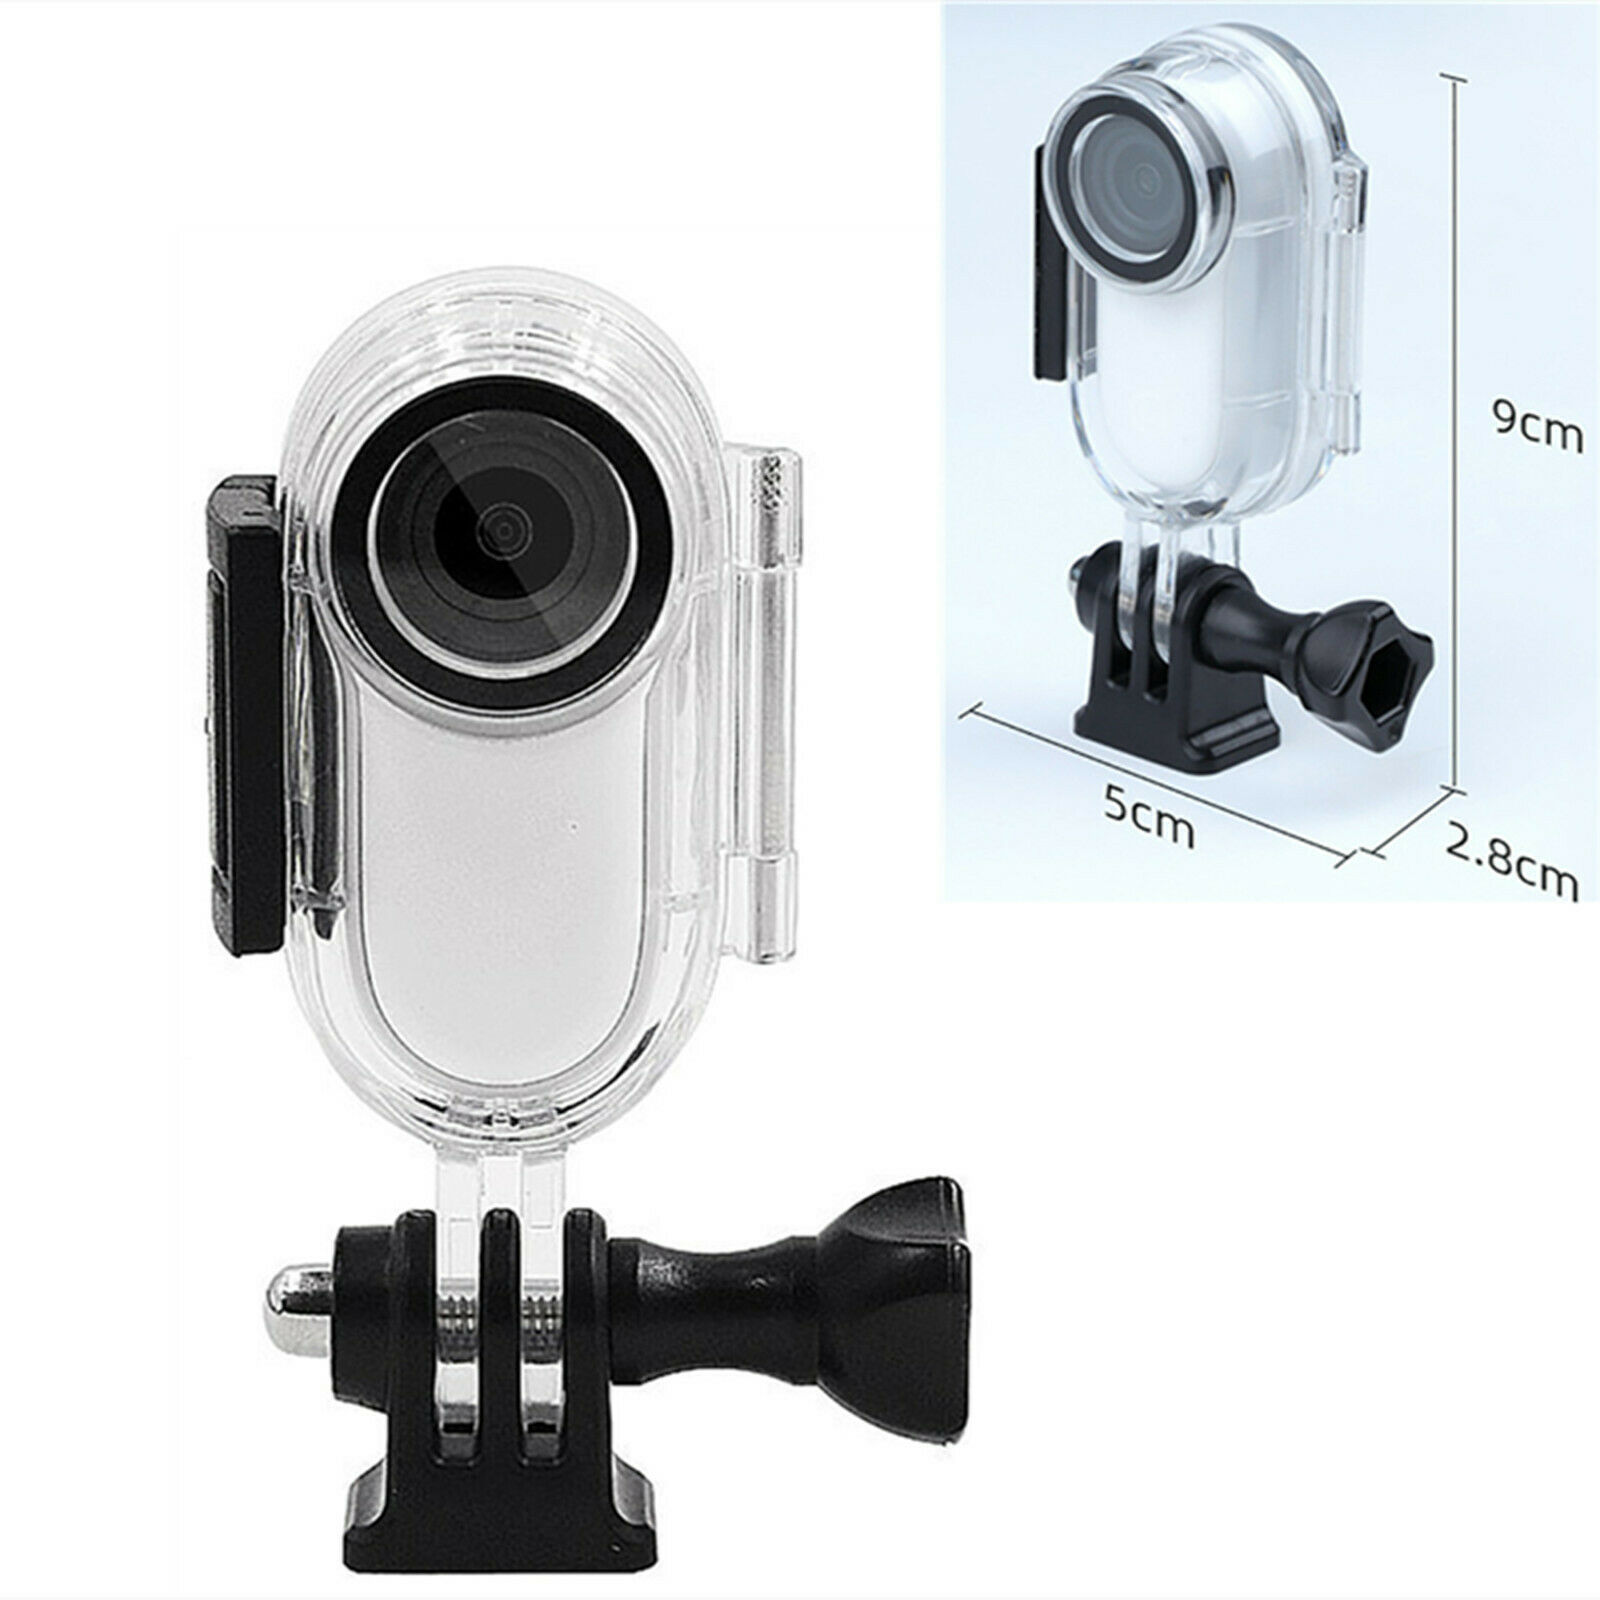 Waterproof Case Protective Cover Housing Shell Adapter for Insta360 Go2 Camera